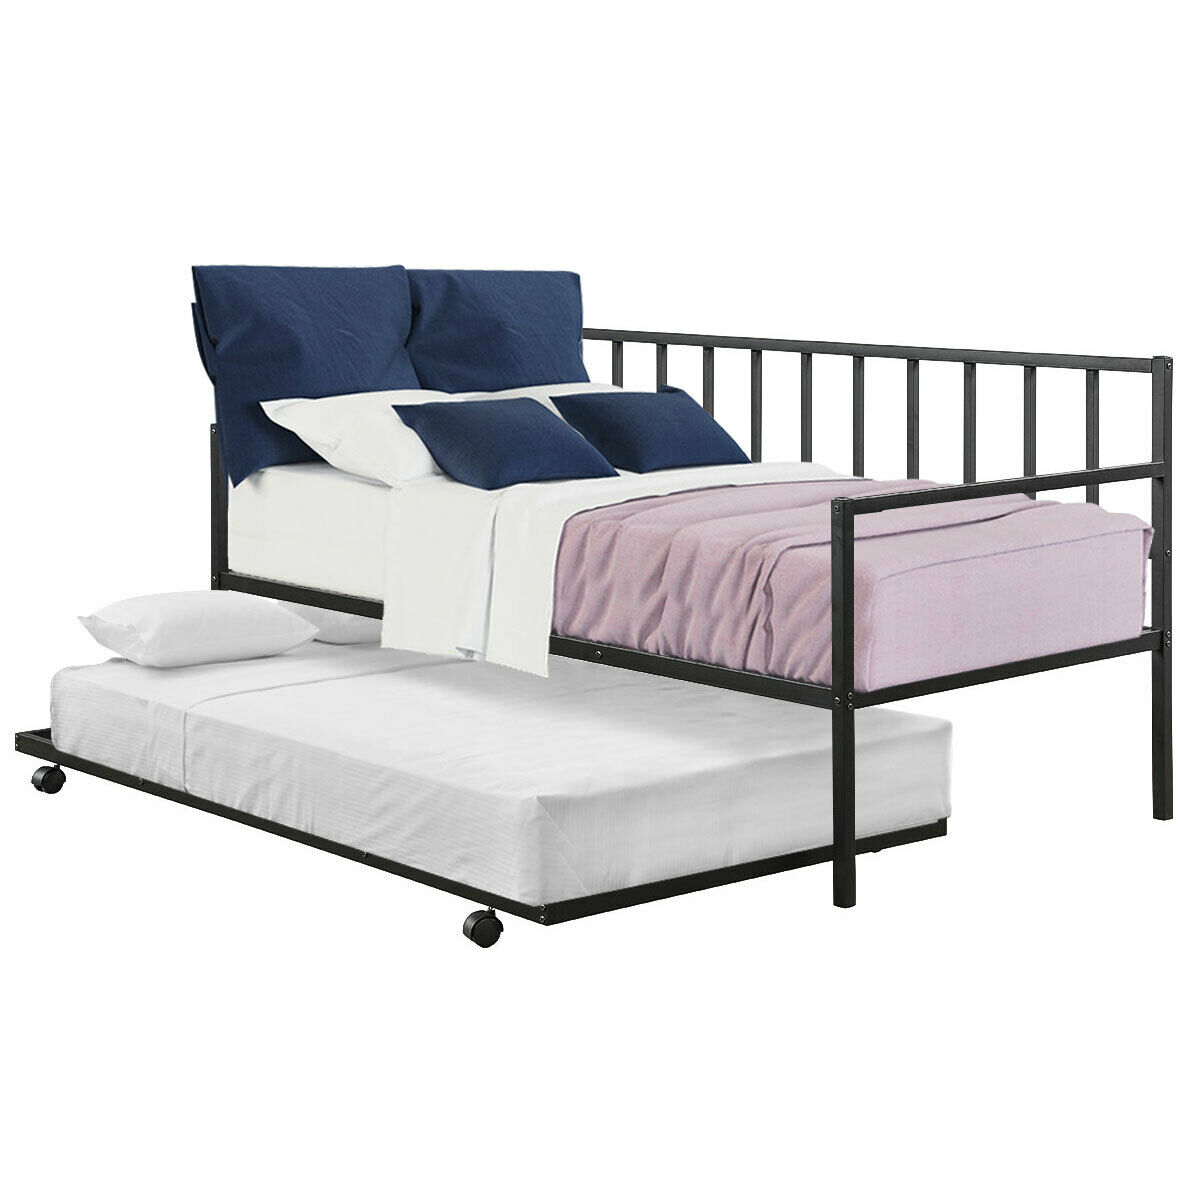 gymax twin trundle daybed w 4 casters mattress platform bed sofa